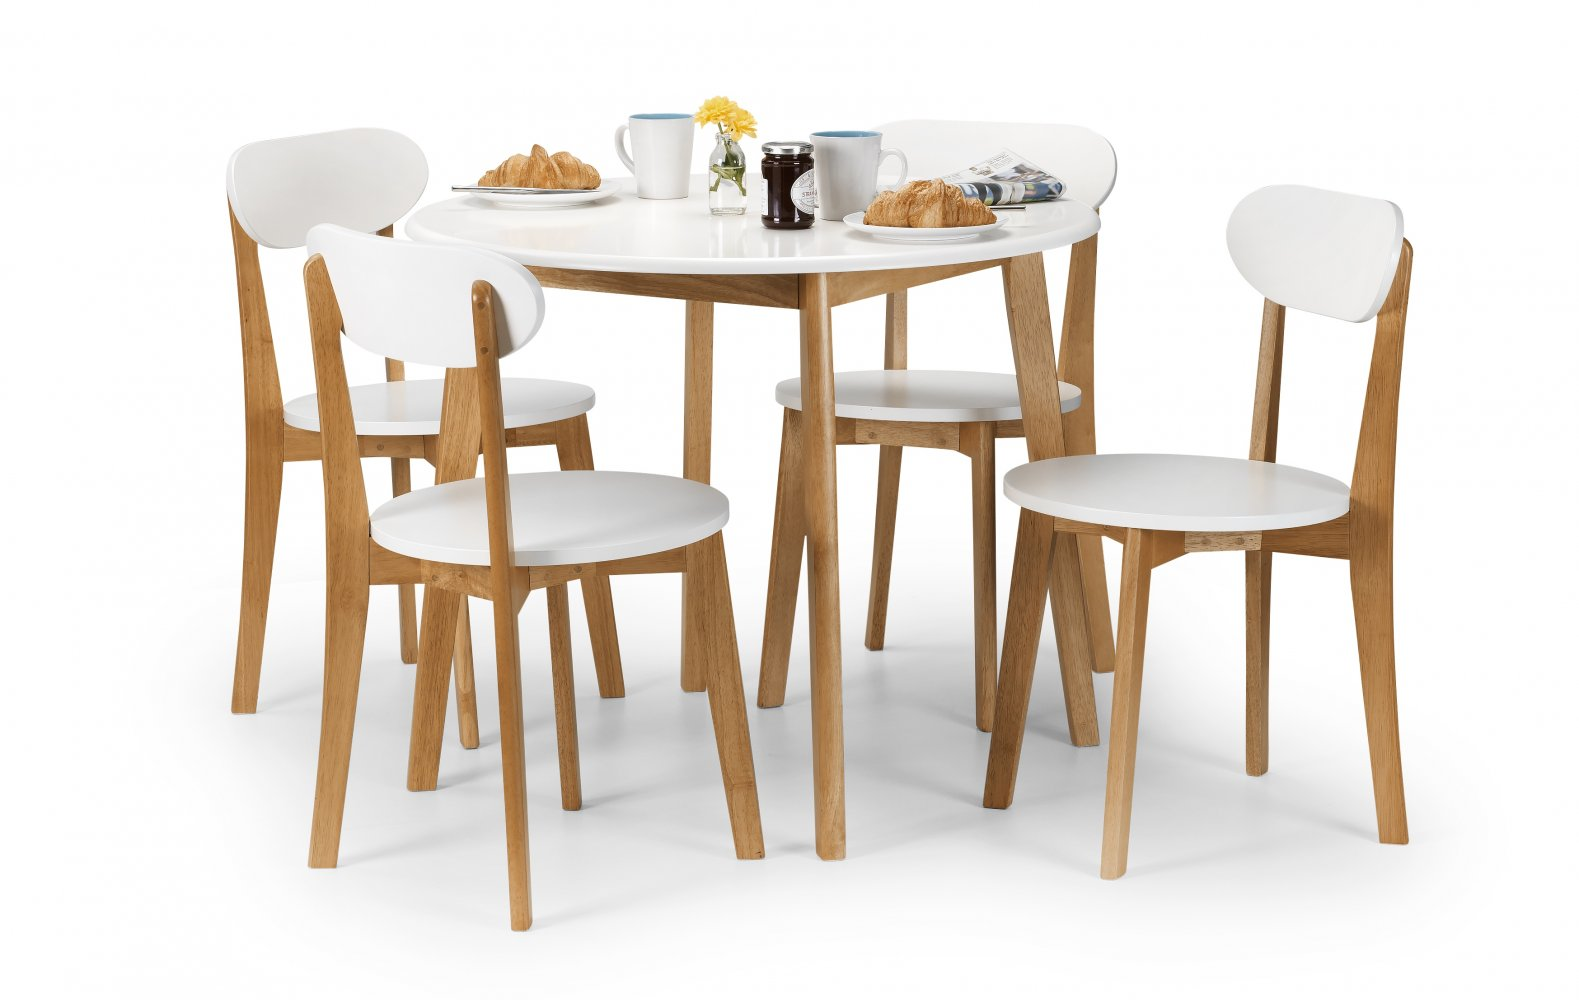 Ashley\'s Trade Carpet Centre: - Tiffany Dining Table and 4 Chairs